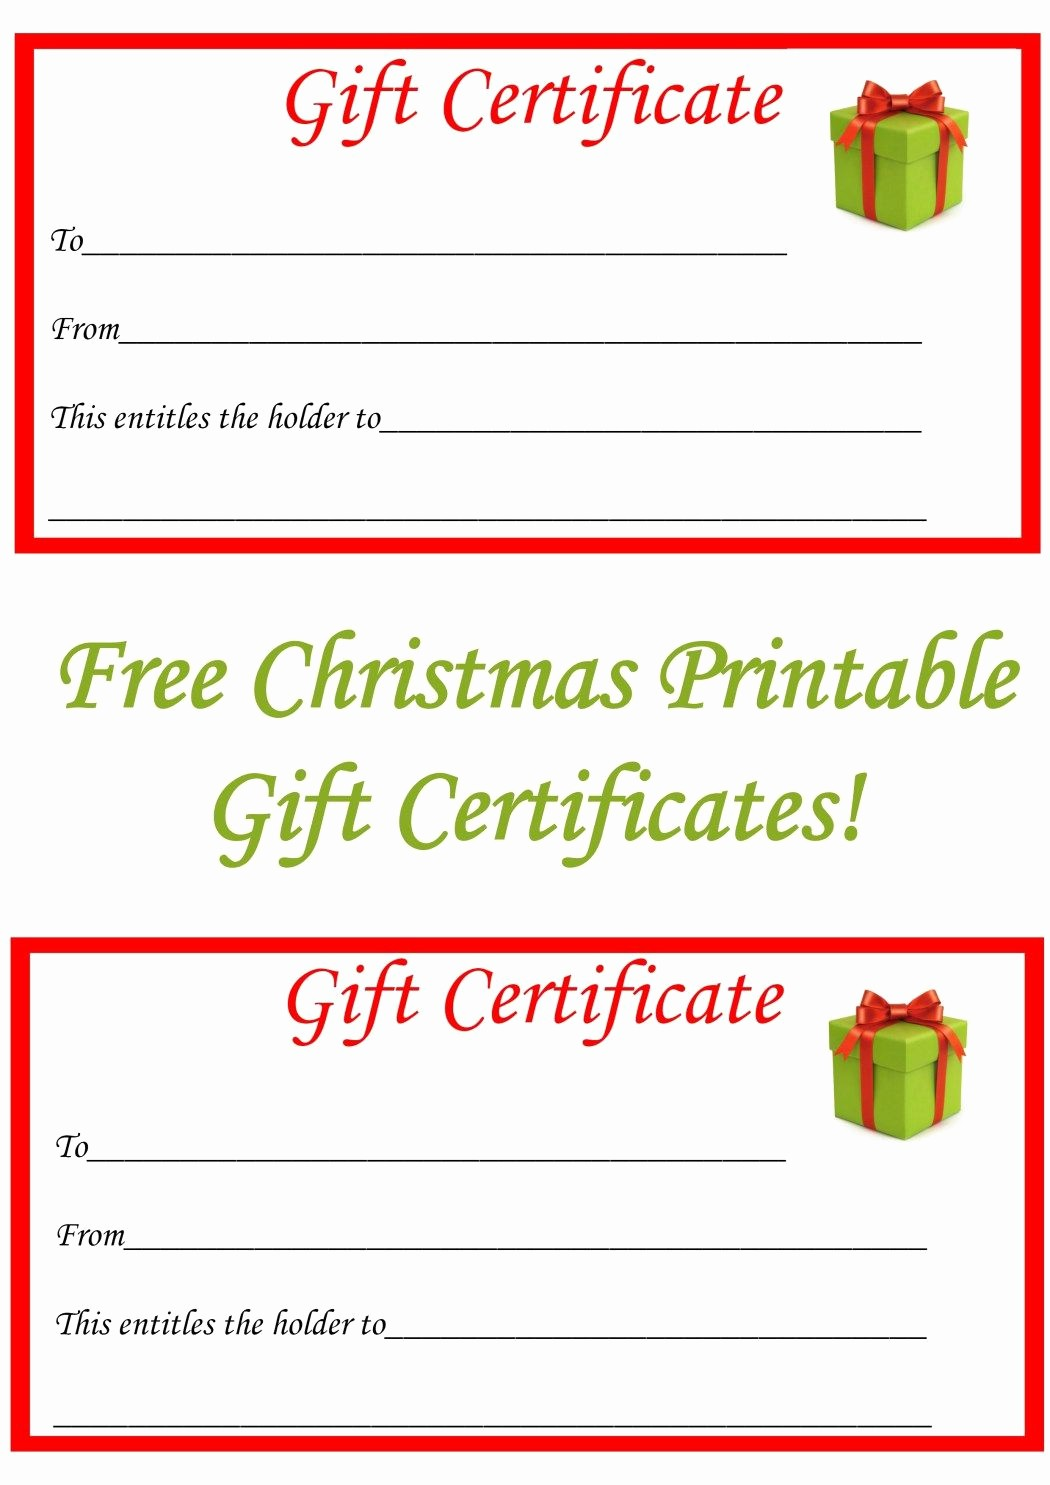 Homemade Gift Certificate Templates Free Best Of Best 25 Printable T Certificates Ideas On Pinterest